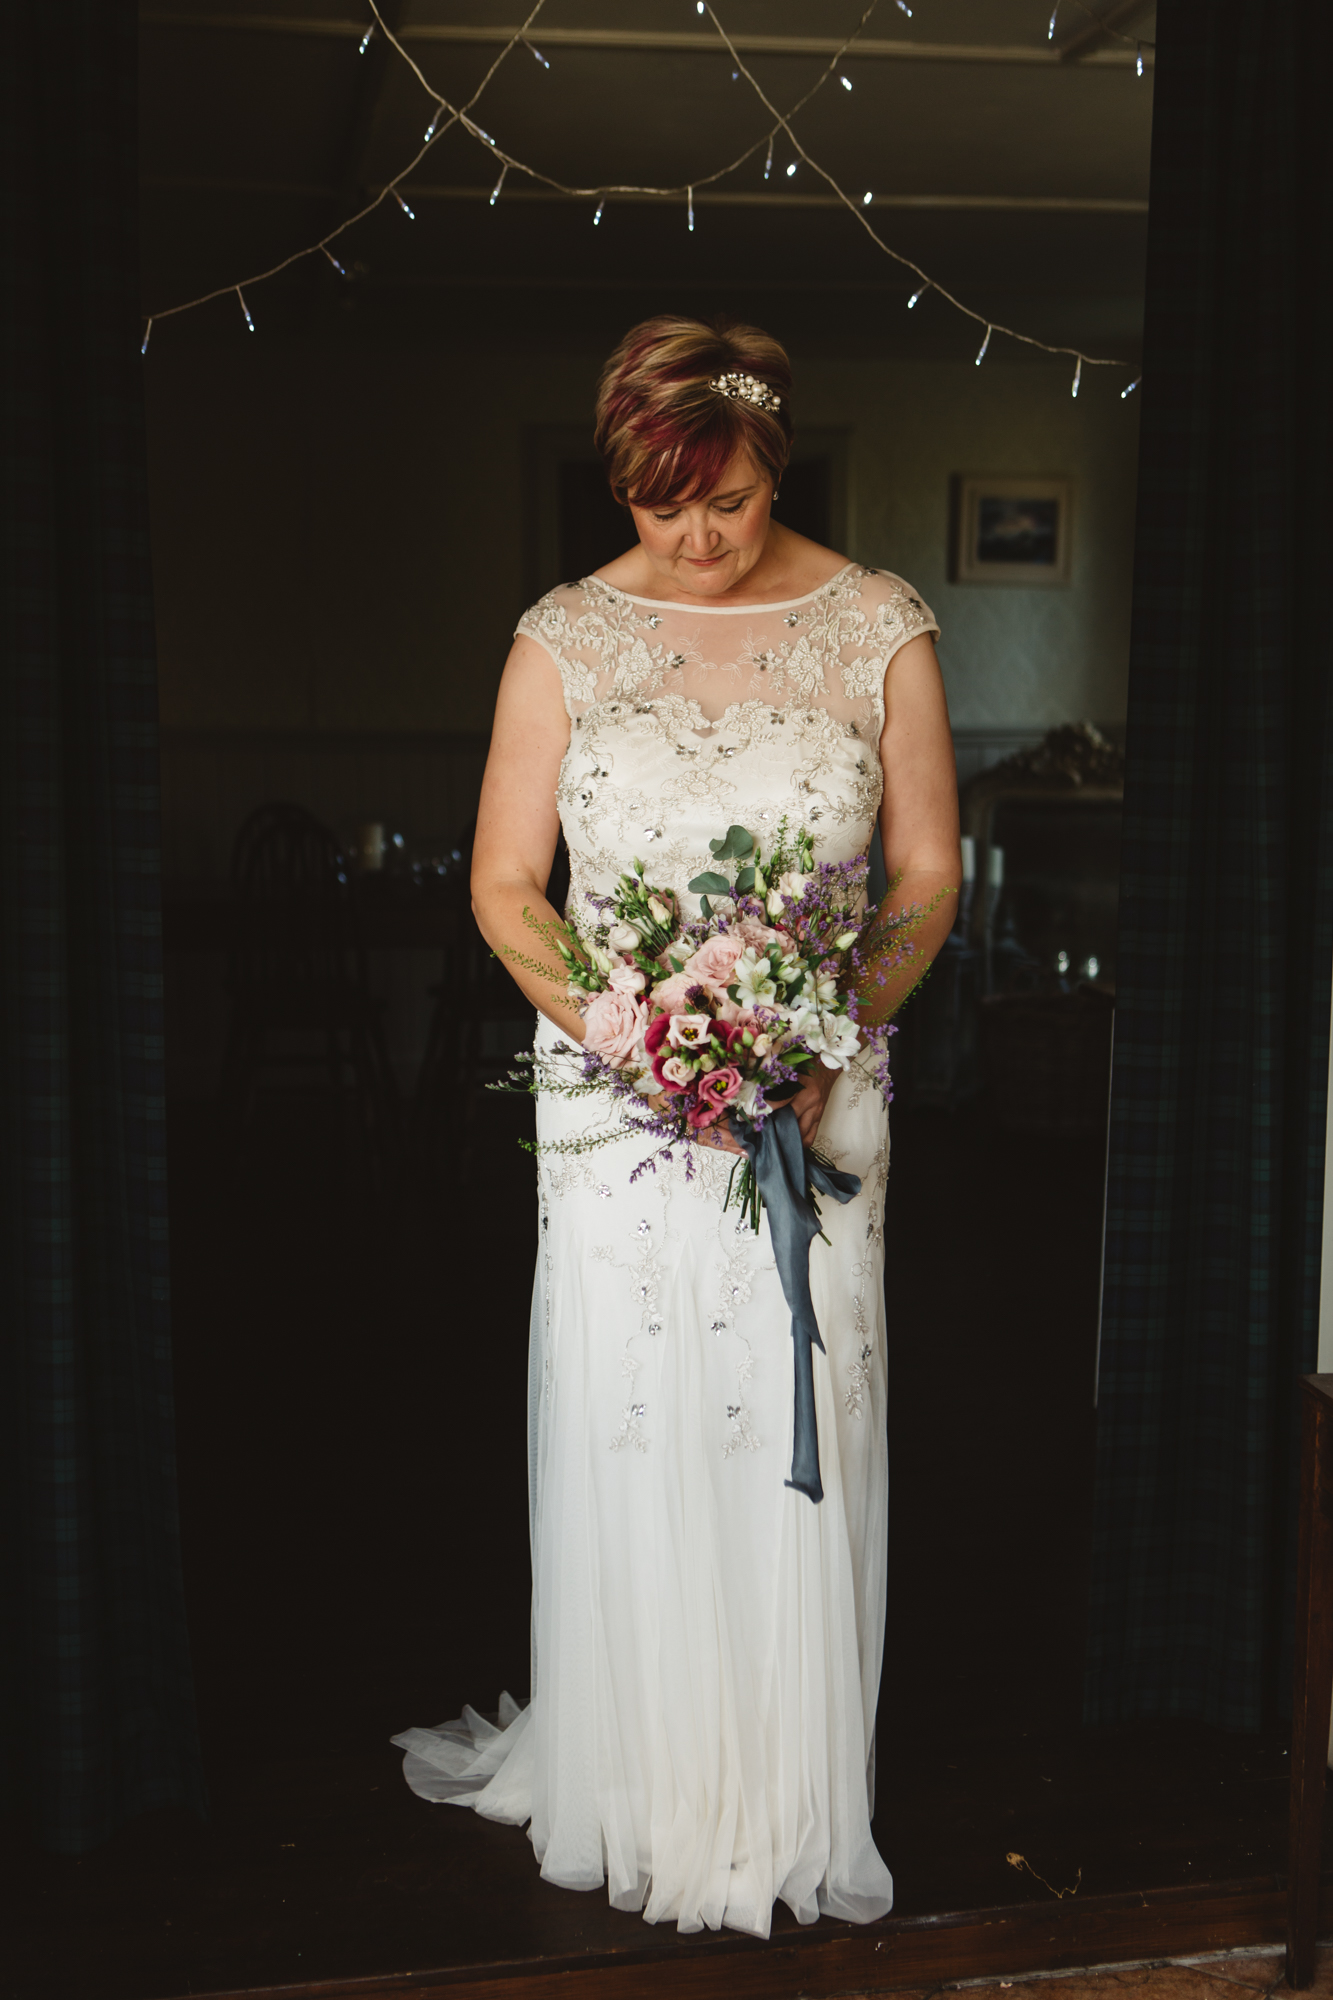 Beaming bride in wedding dress short pink hair looking down holding bouquet